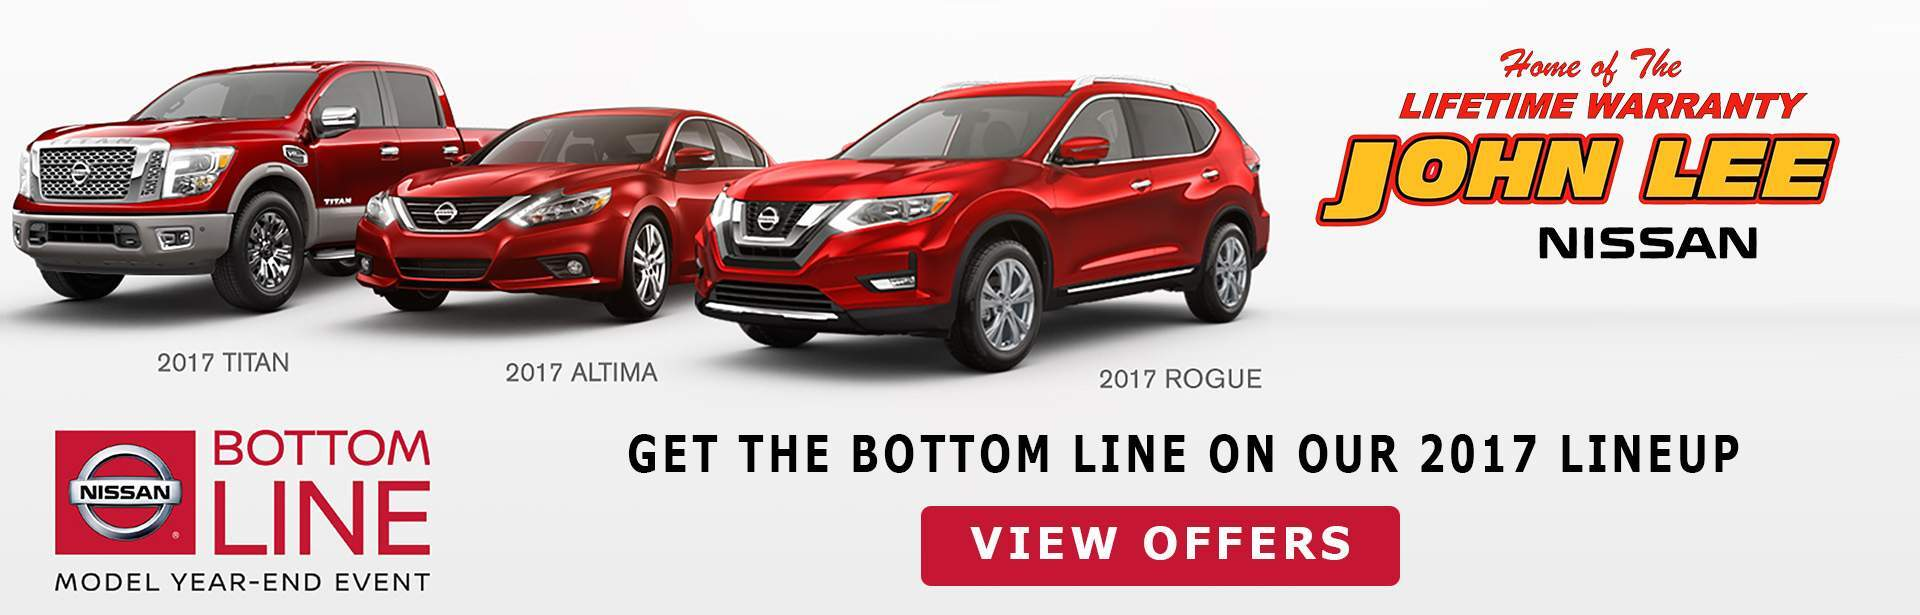 BOTTOM LINE SALES EVENT AT NISSAN